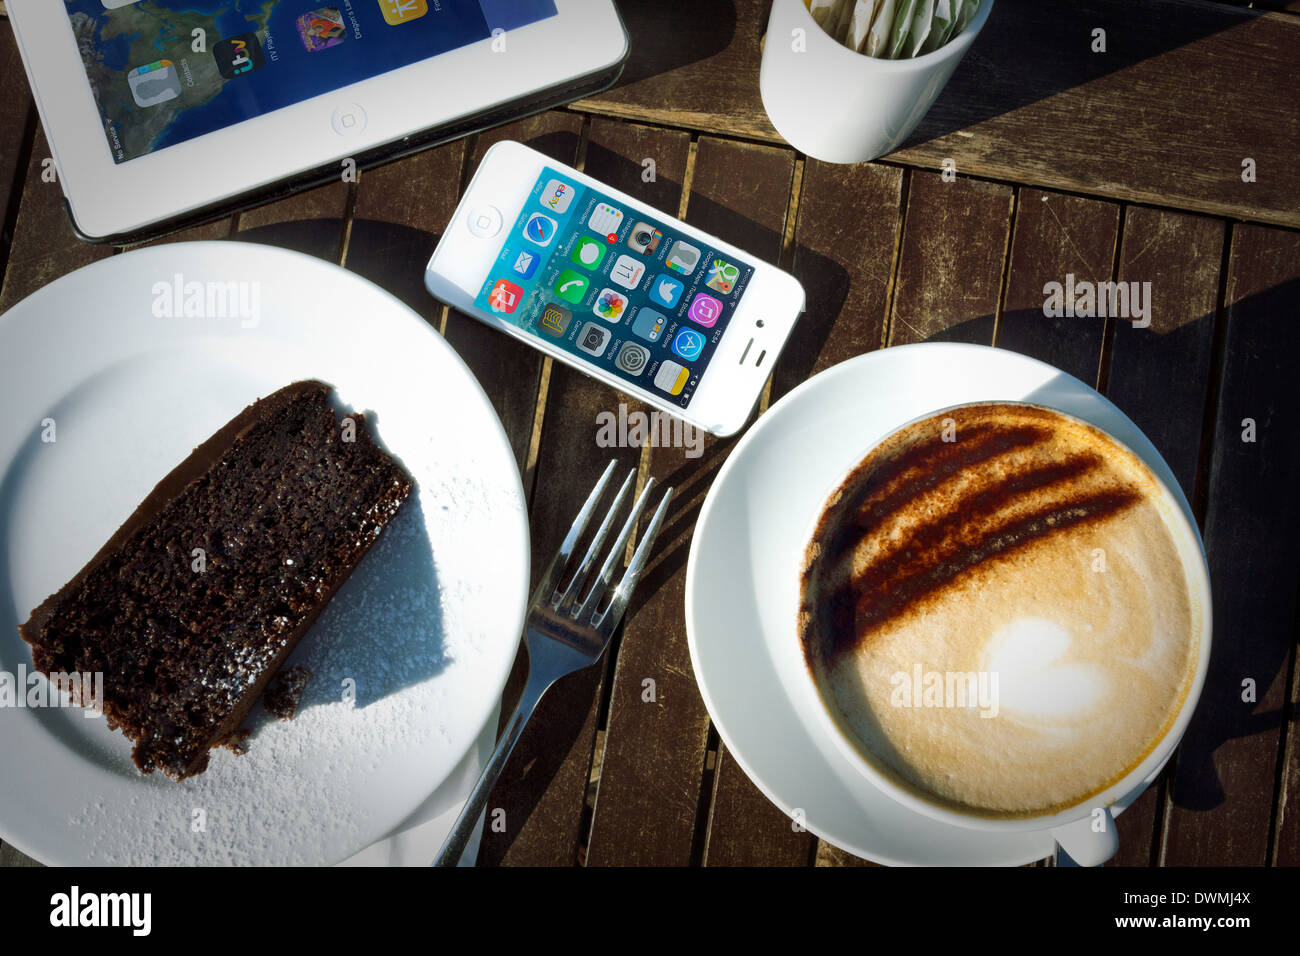 iPhone 4s, iPad 2 And Cake And Cappuccino On Table In Sunlight - Stock Image